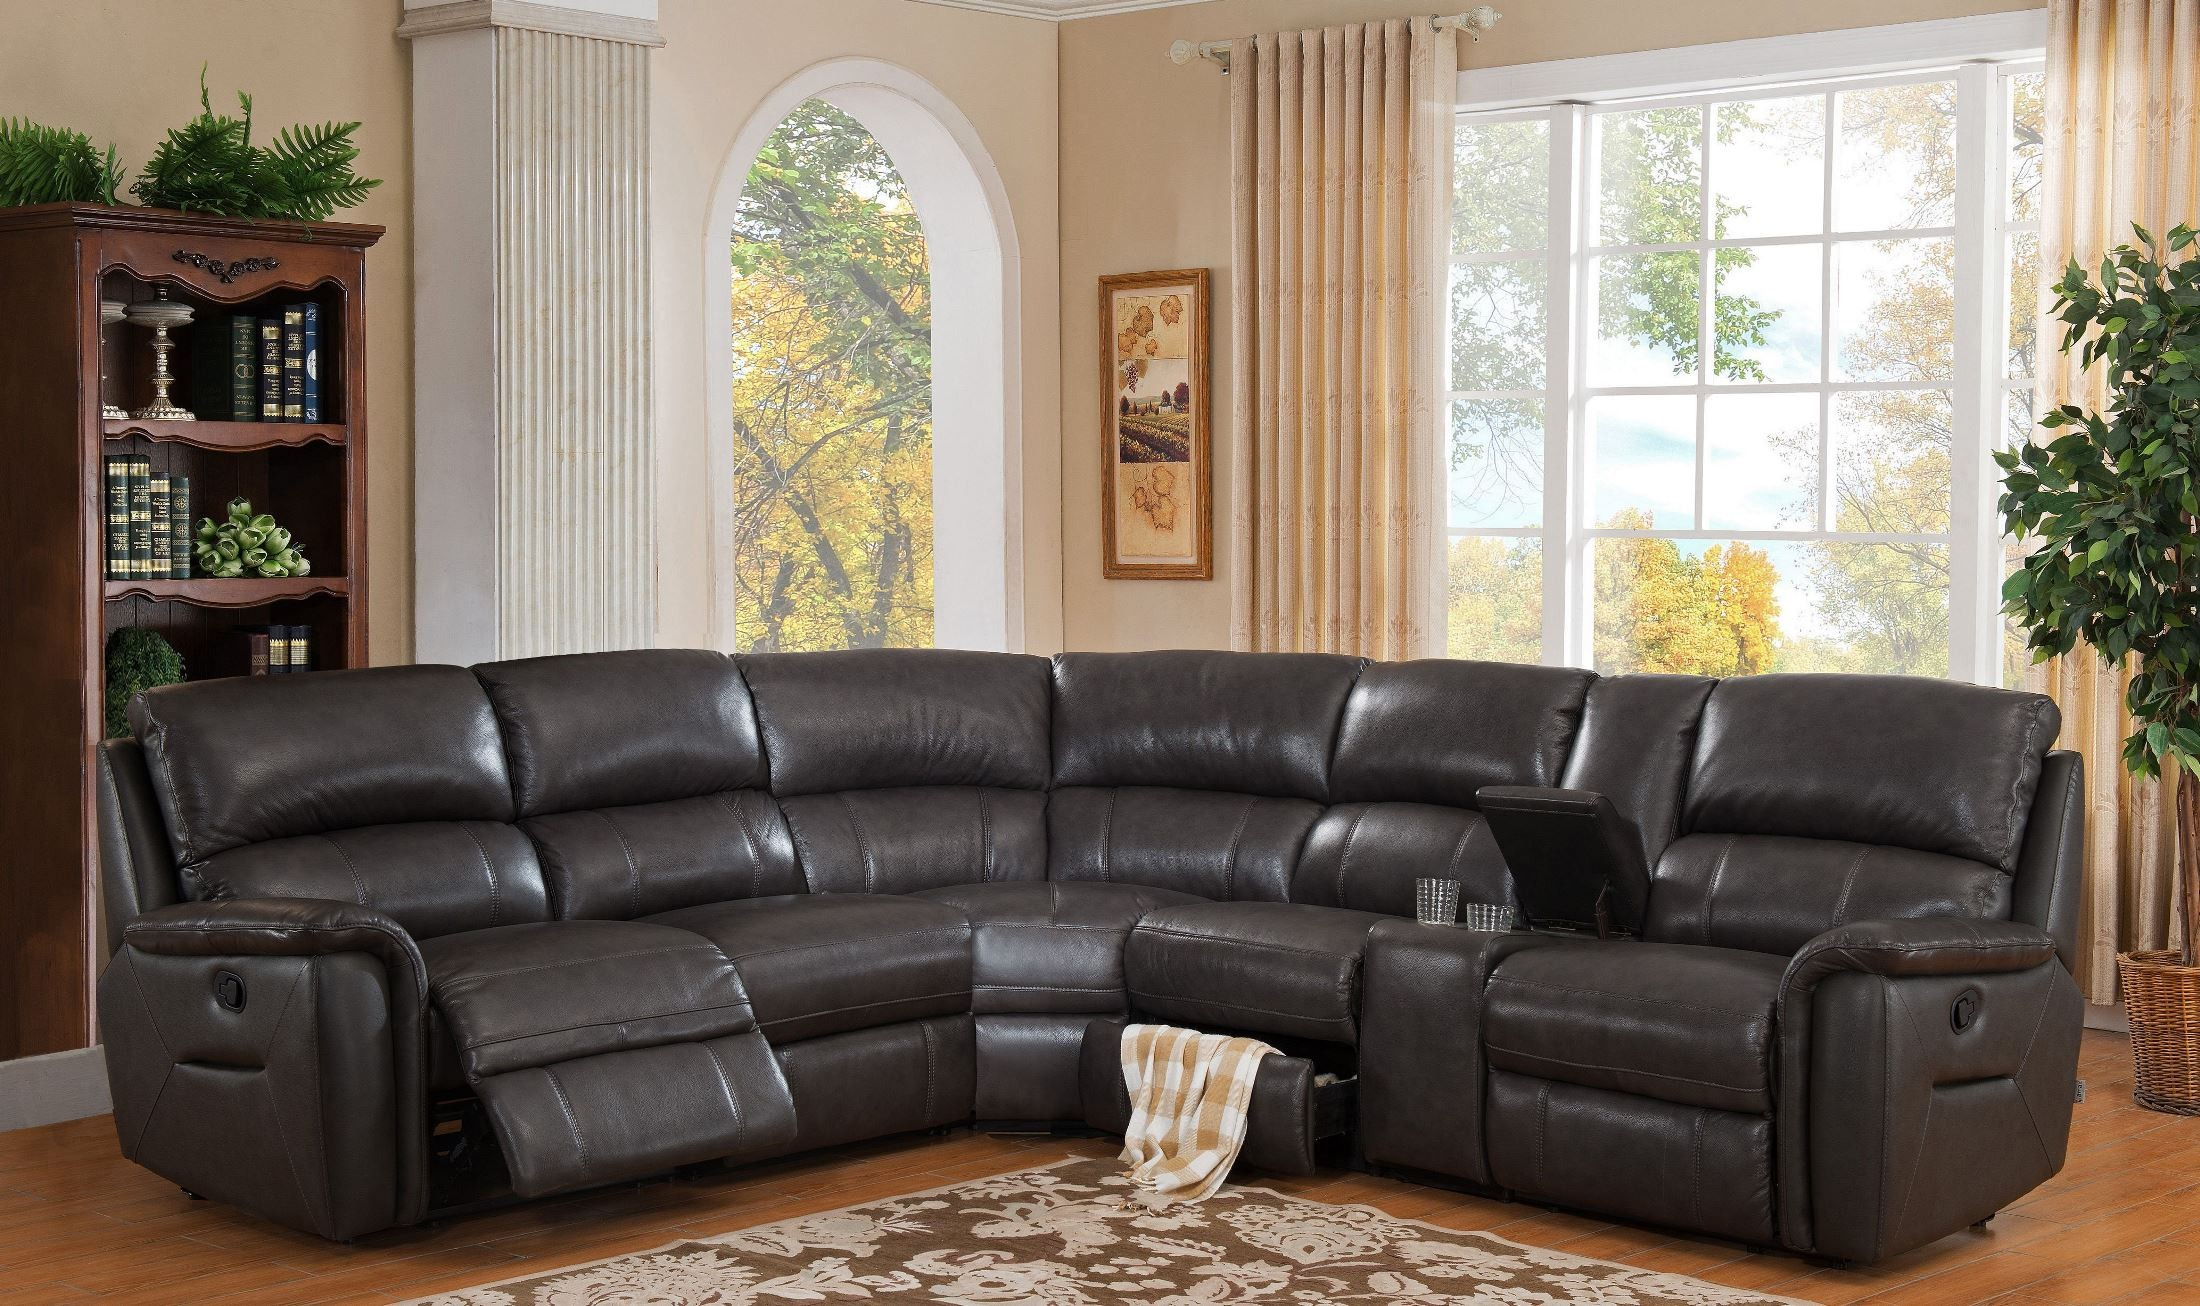 camino charcoal grey reclining sectional from amax leather coleman furniture. Black Bedroom Furniture Sets. Home Design Ideas